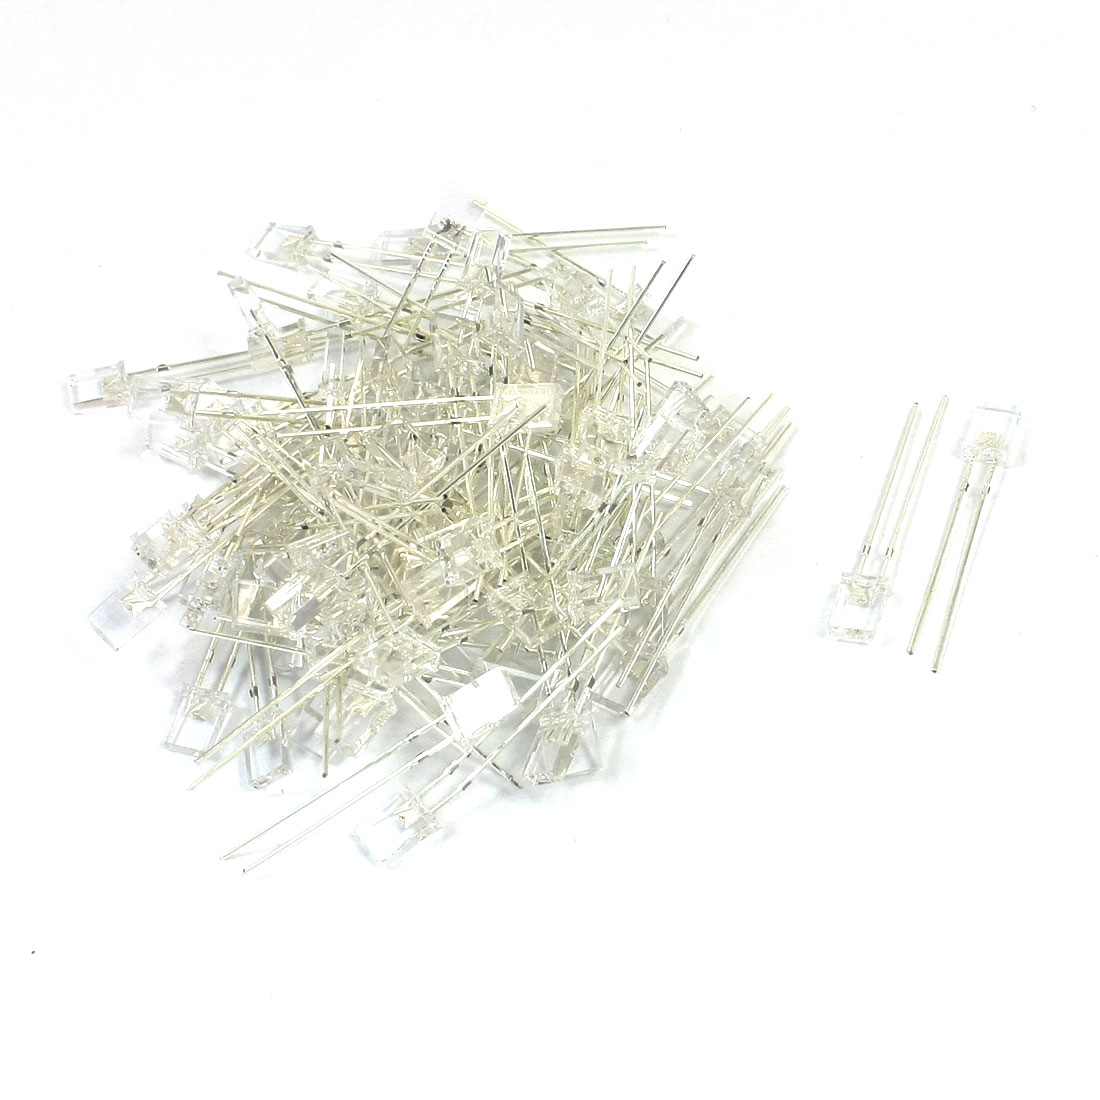 100 Pcs DC3.0-3.2V Rectangle Head 2 Terminals Green LED Light Emitting Diodes 2mm x 5mm x 7mm